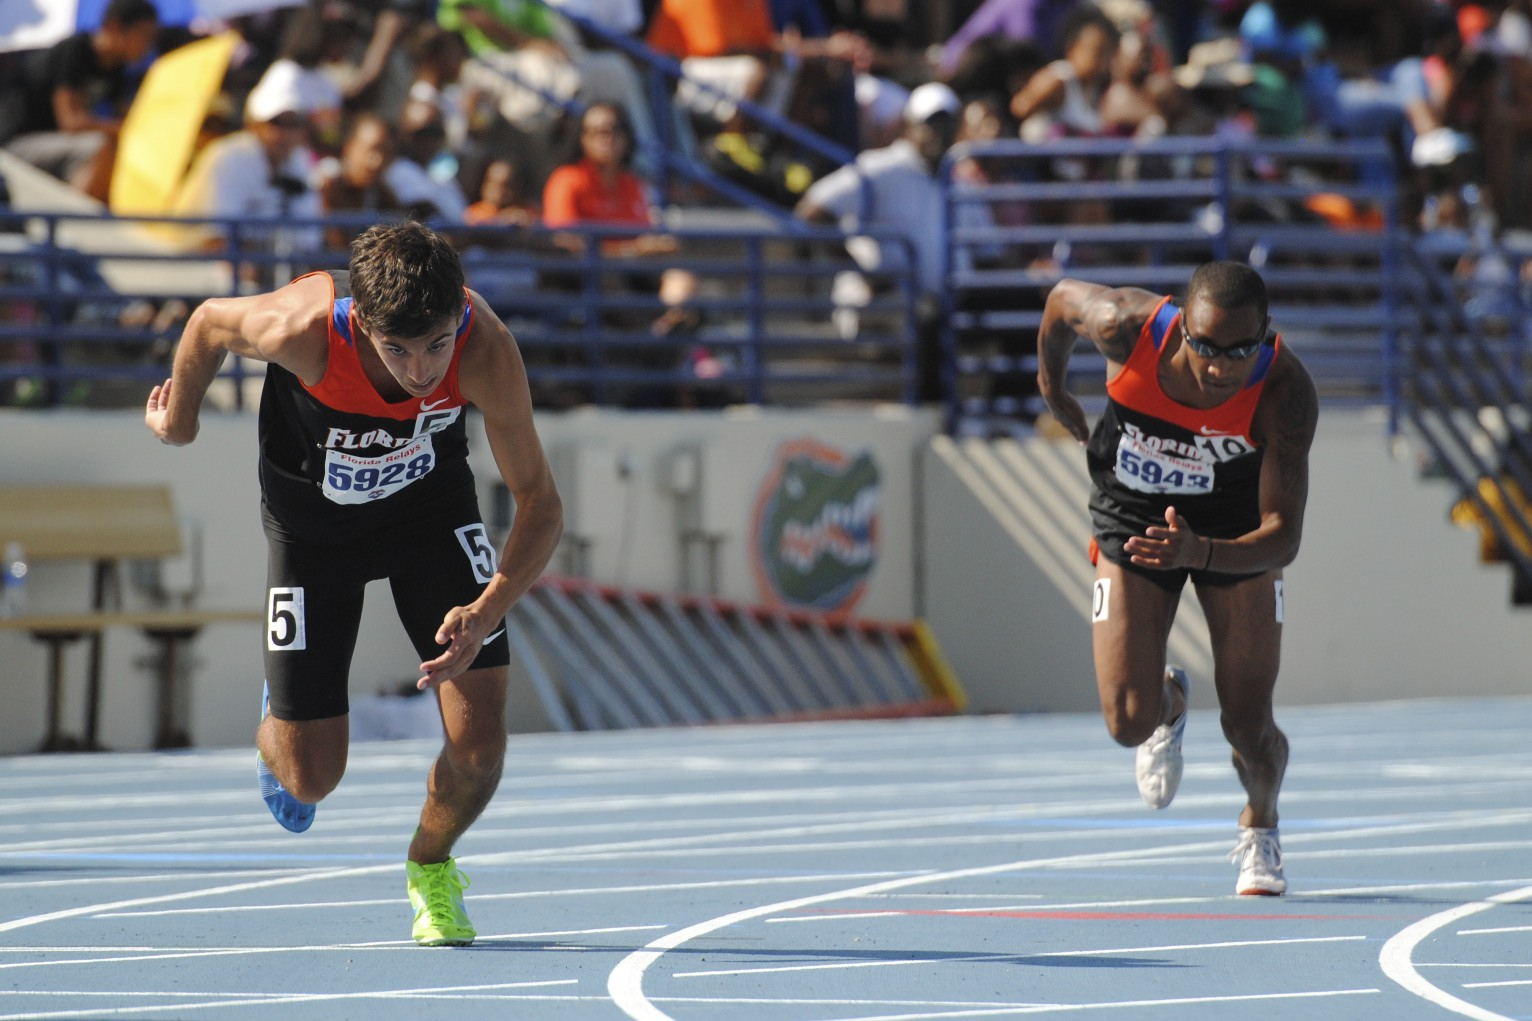 Tyler Cardillo and John Mitchell of the Florida Gators finish 7th and 8th in the 800 meter run, respectively.